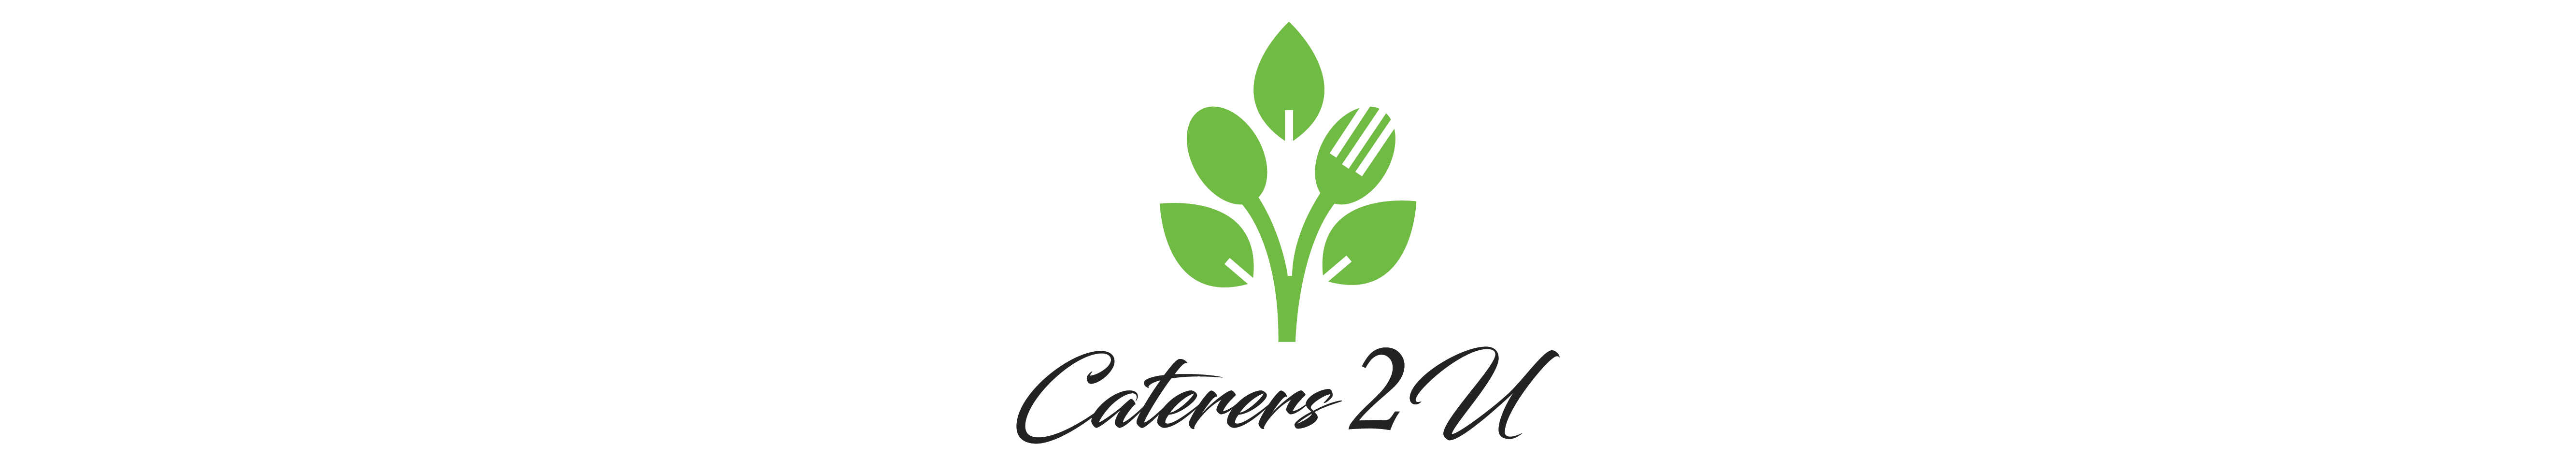 Caterers2u-Catering Lehigh Valley PA including Easton, Bethlehem and Allentown